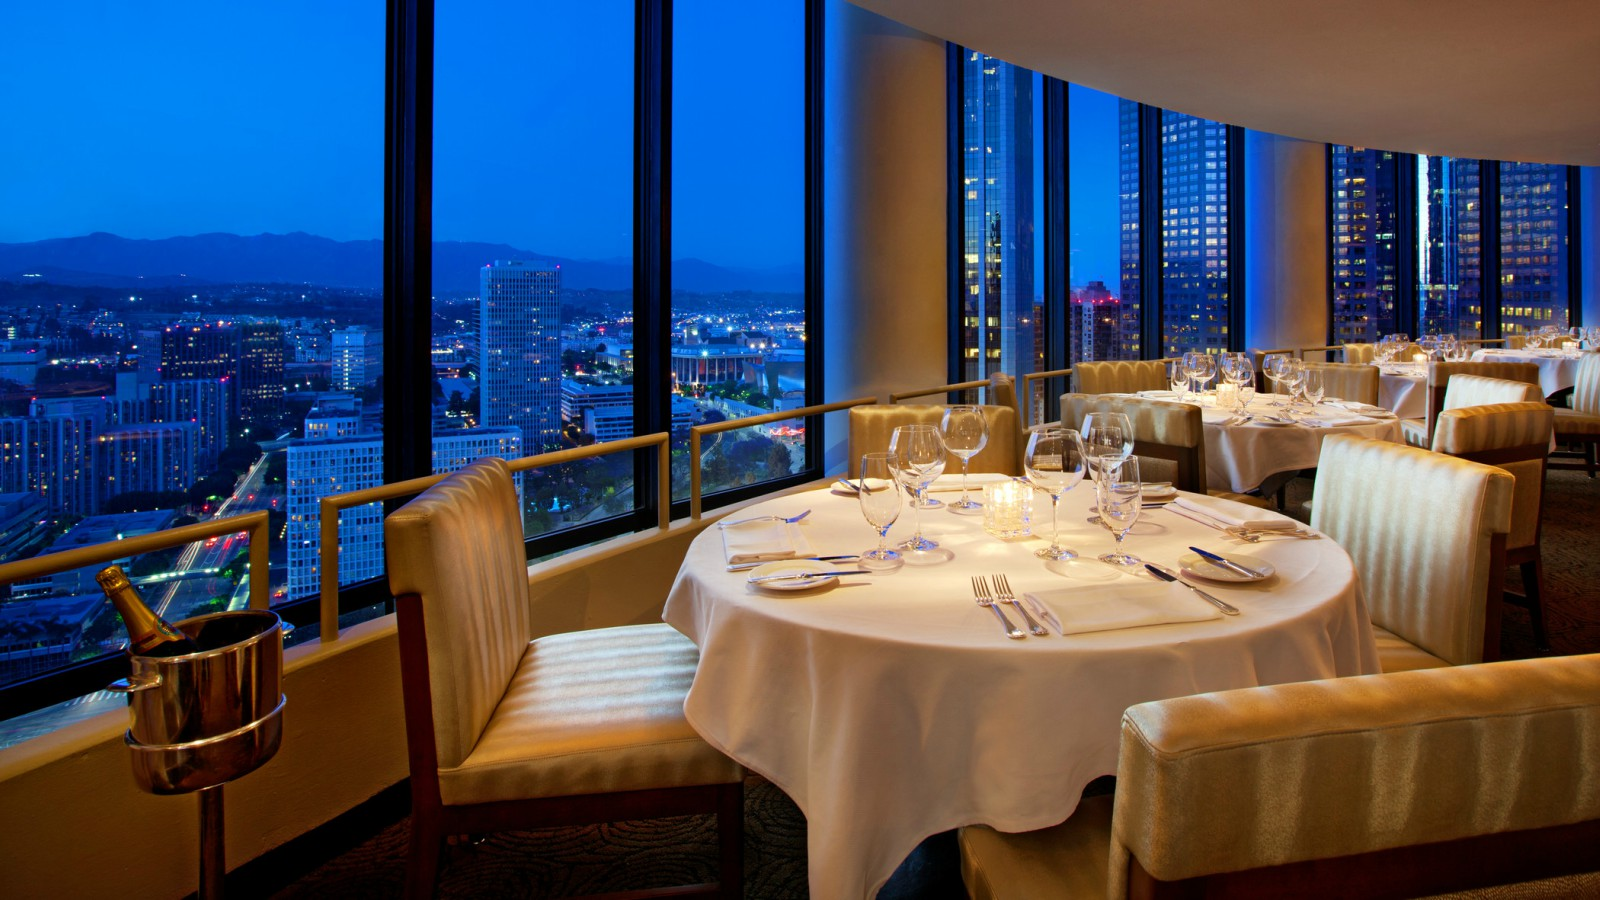 Los Angeles Luxury Hotel Amenities | The Westin Bonaventure Los Angeles Hotel and Suites